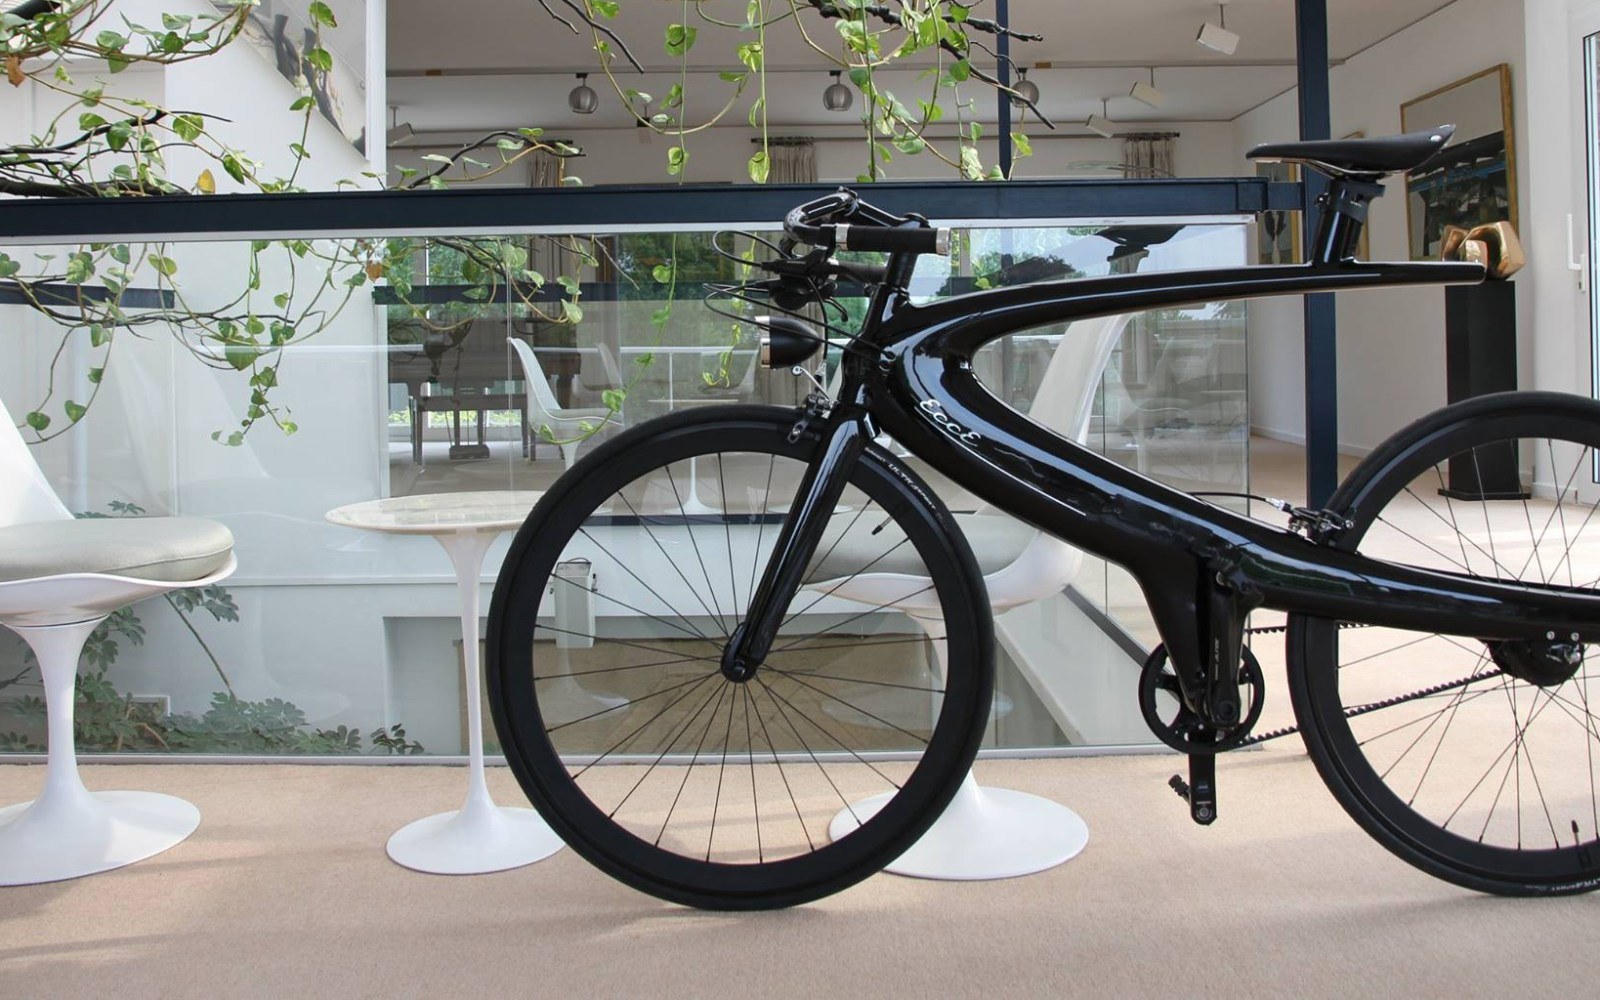 ECCE's stunning bicycles blend high-end materials and sci-fi design